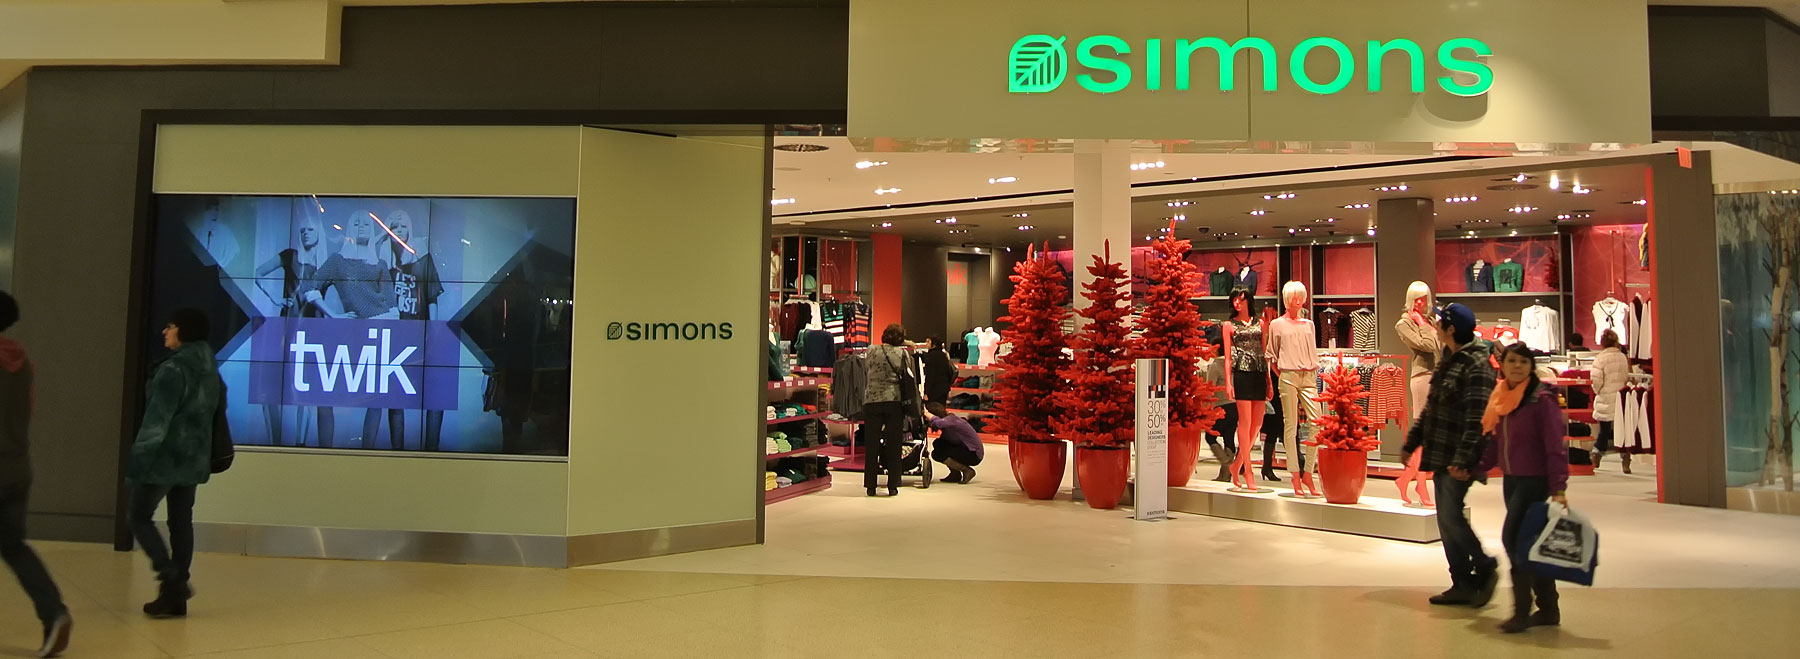 Simons at West Edmonton Mall Audio Equipment Supply and Installation by Allstar Show Industries.